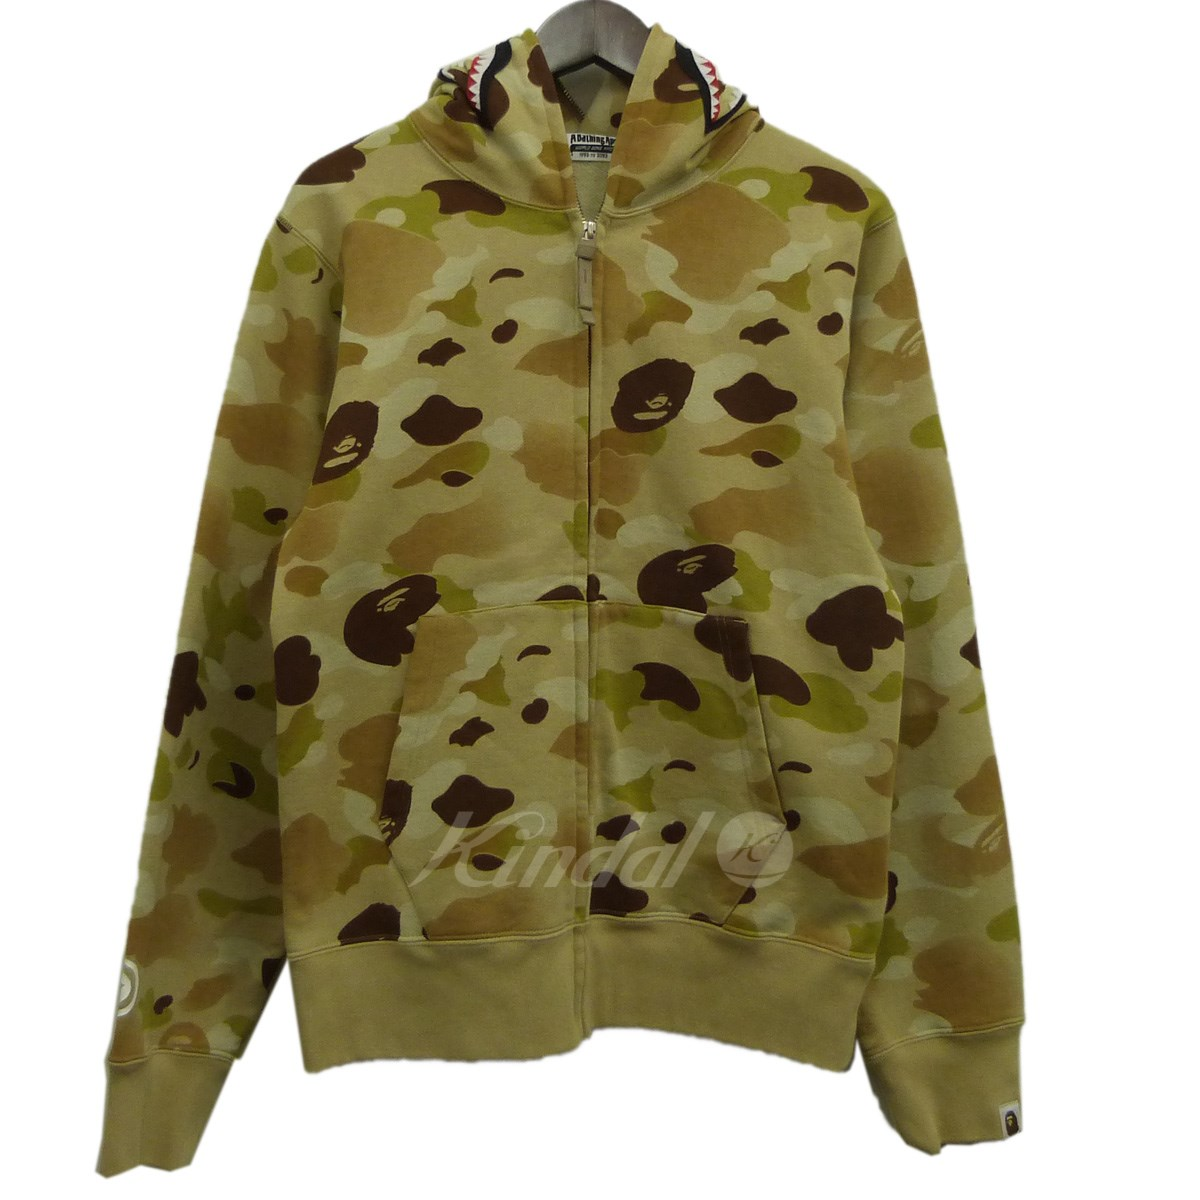 【中古】A BATHING APE 18SS「GRADATION CAMO SHARK FULL ZIP HOODIE」シャークパーカー 【送料無料】 【140629】 【KIND1550】